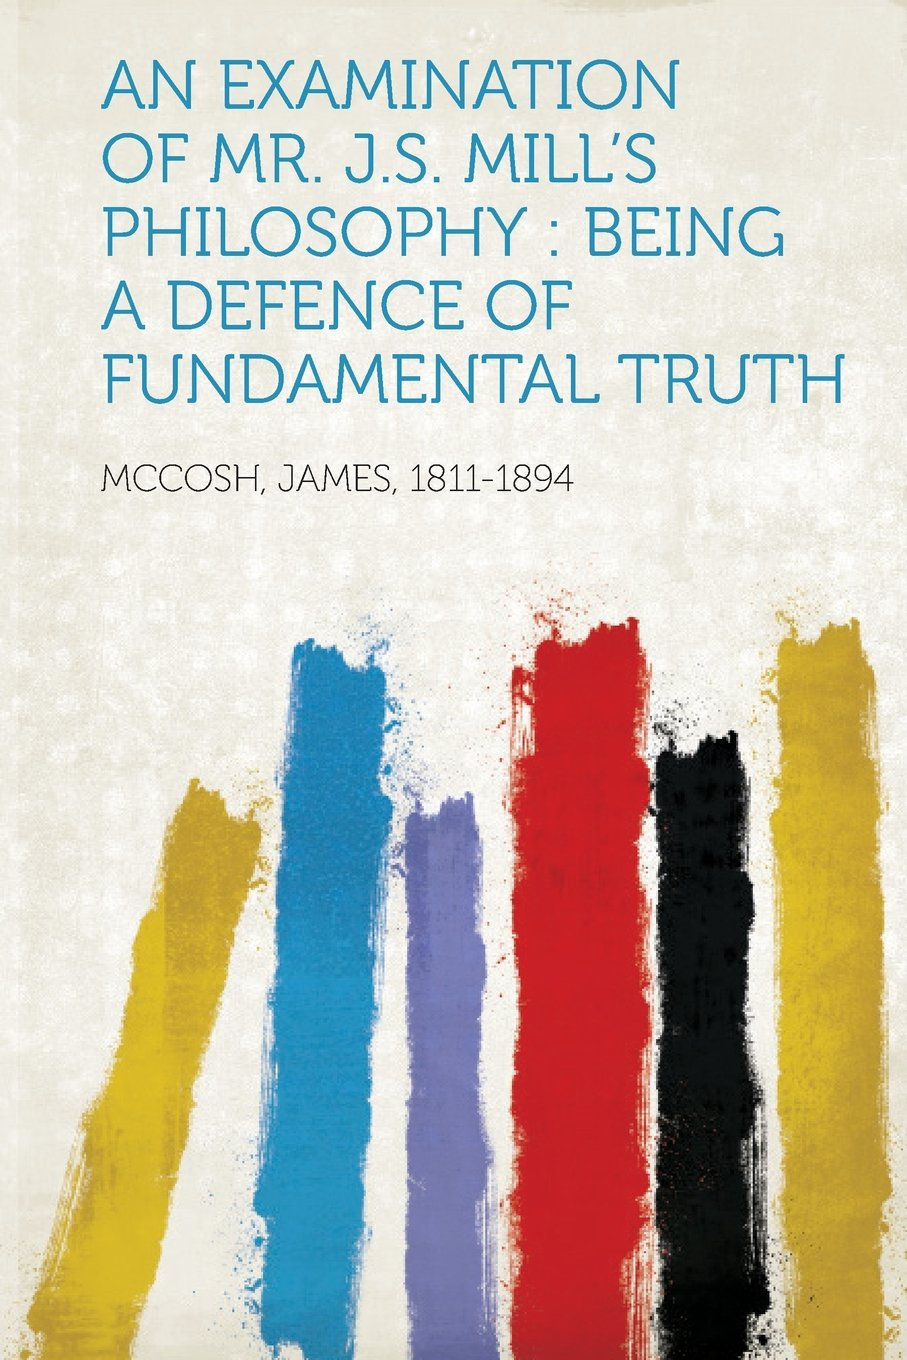 An Examination of Mr. J.S. Mill's Philosophy: Being a Defence of Fundamental Truth PDF